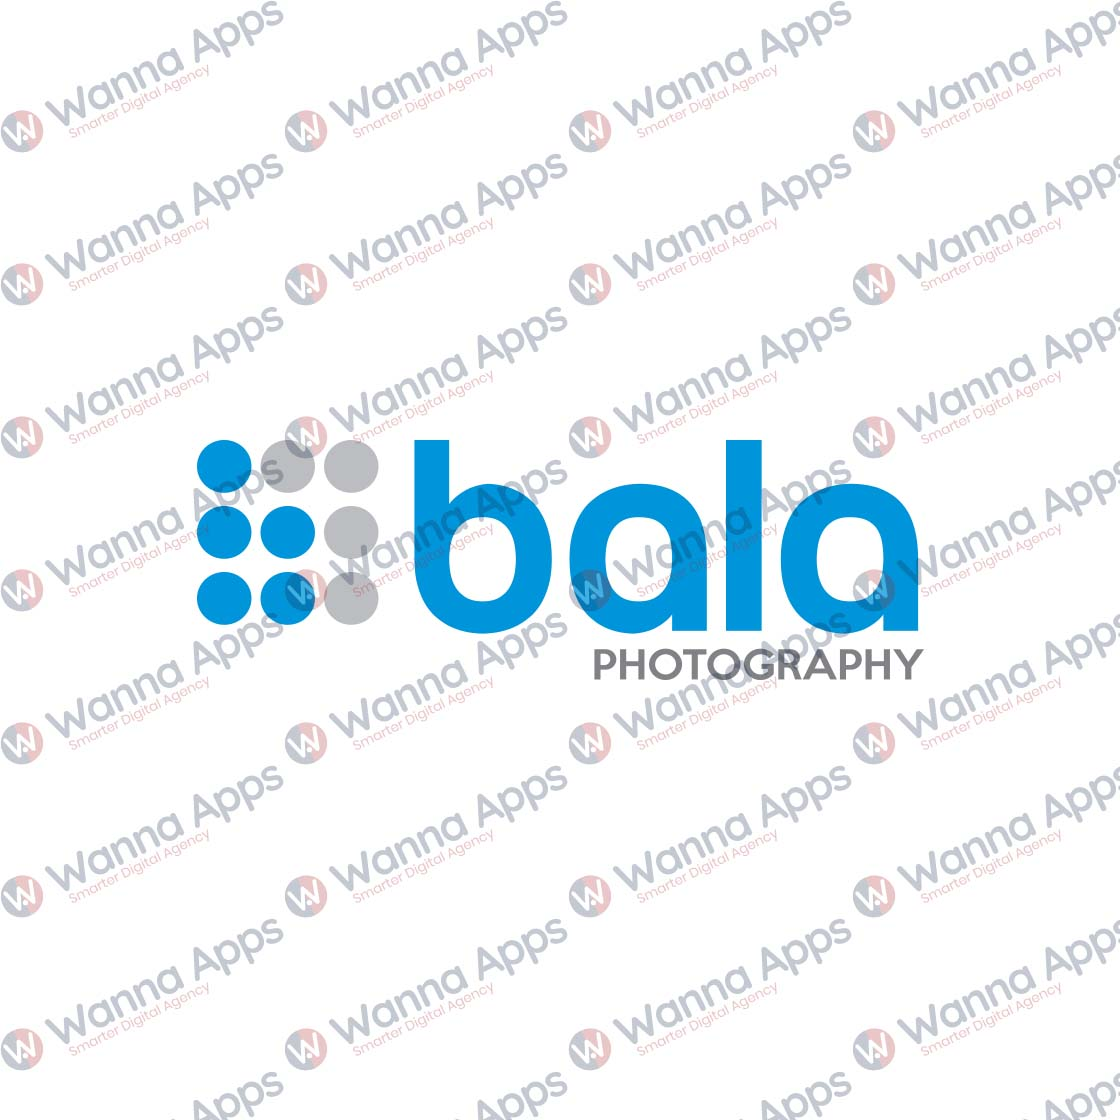 wannaapps-digital-marketing-agency-bala-photography-branding